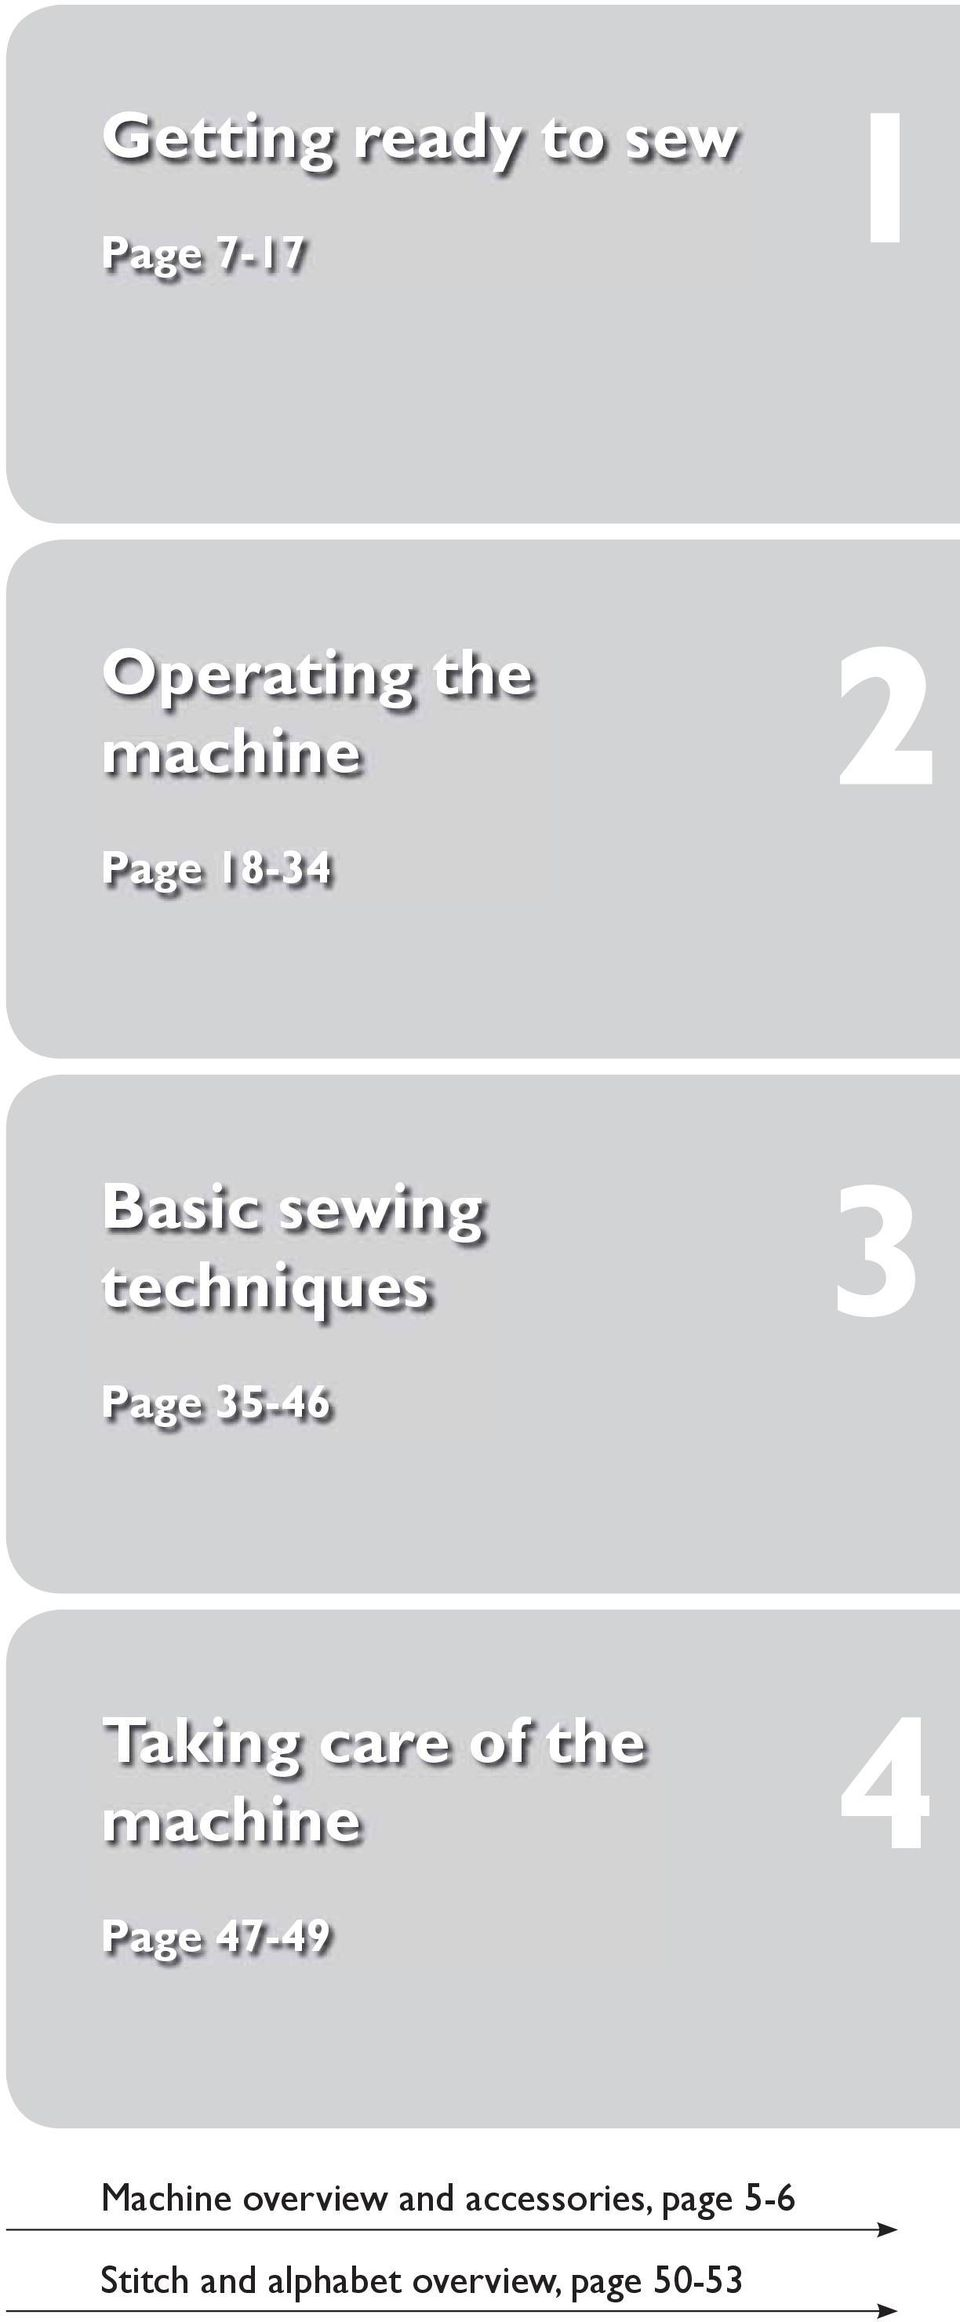 care of the machine 4 Page 47-49 Machine overview and